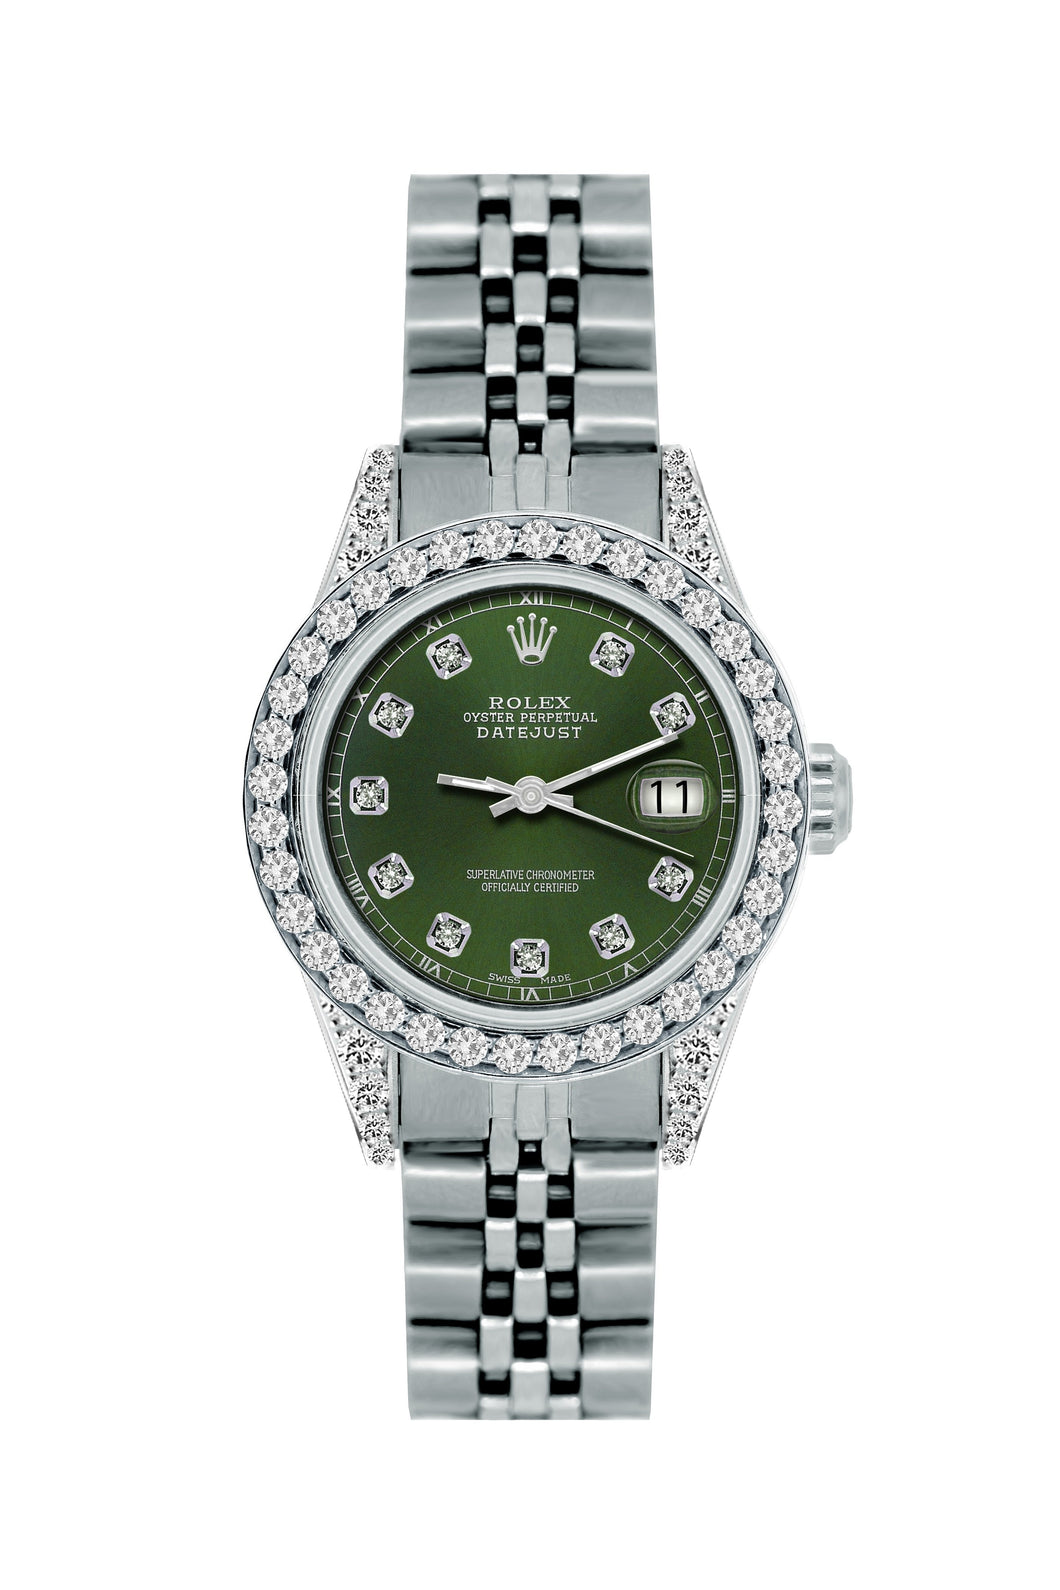 Rolex Datejust 26mm Stainless Steel Bracelet Black Forest Dial w/ Diamond Bezel and Lugs